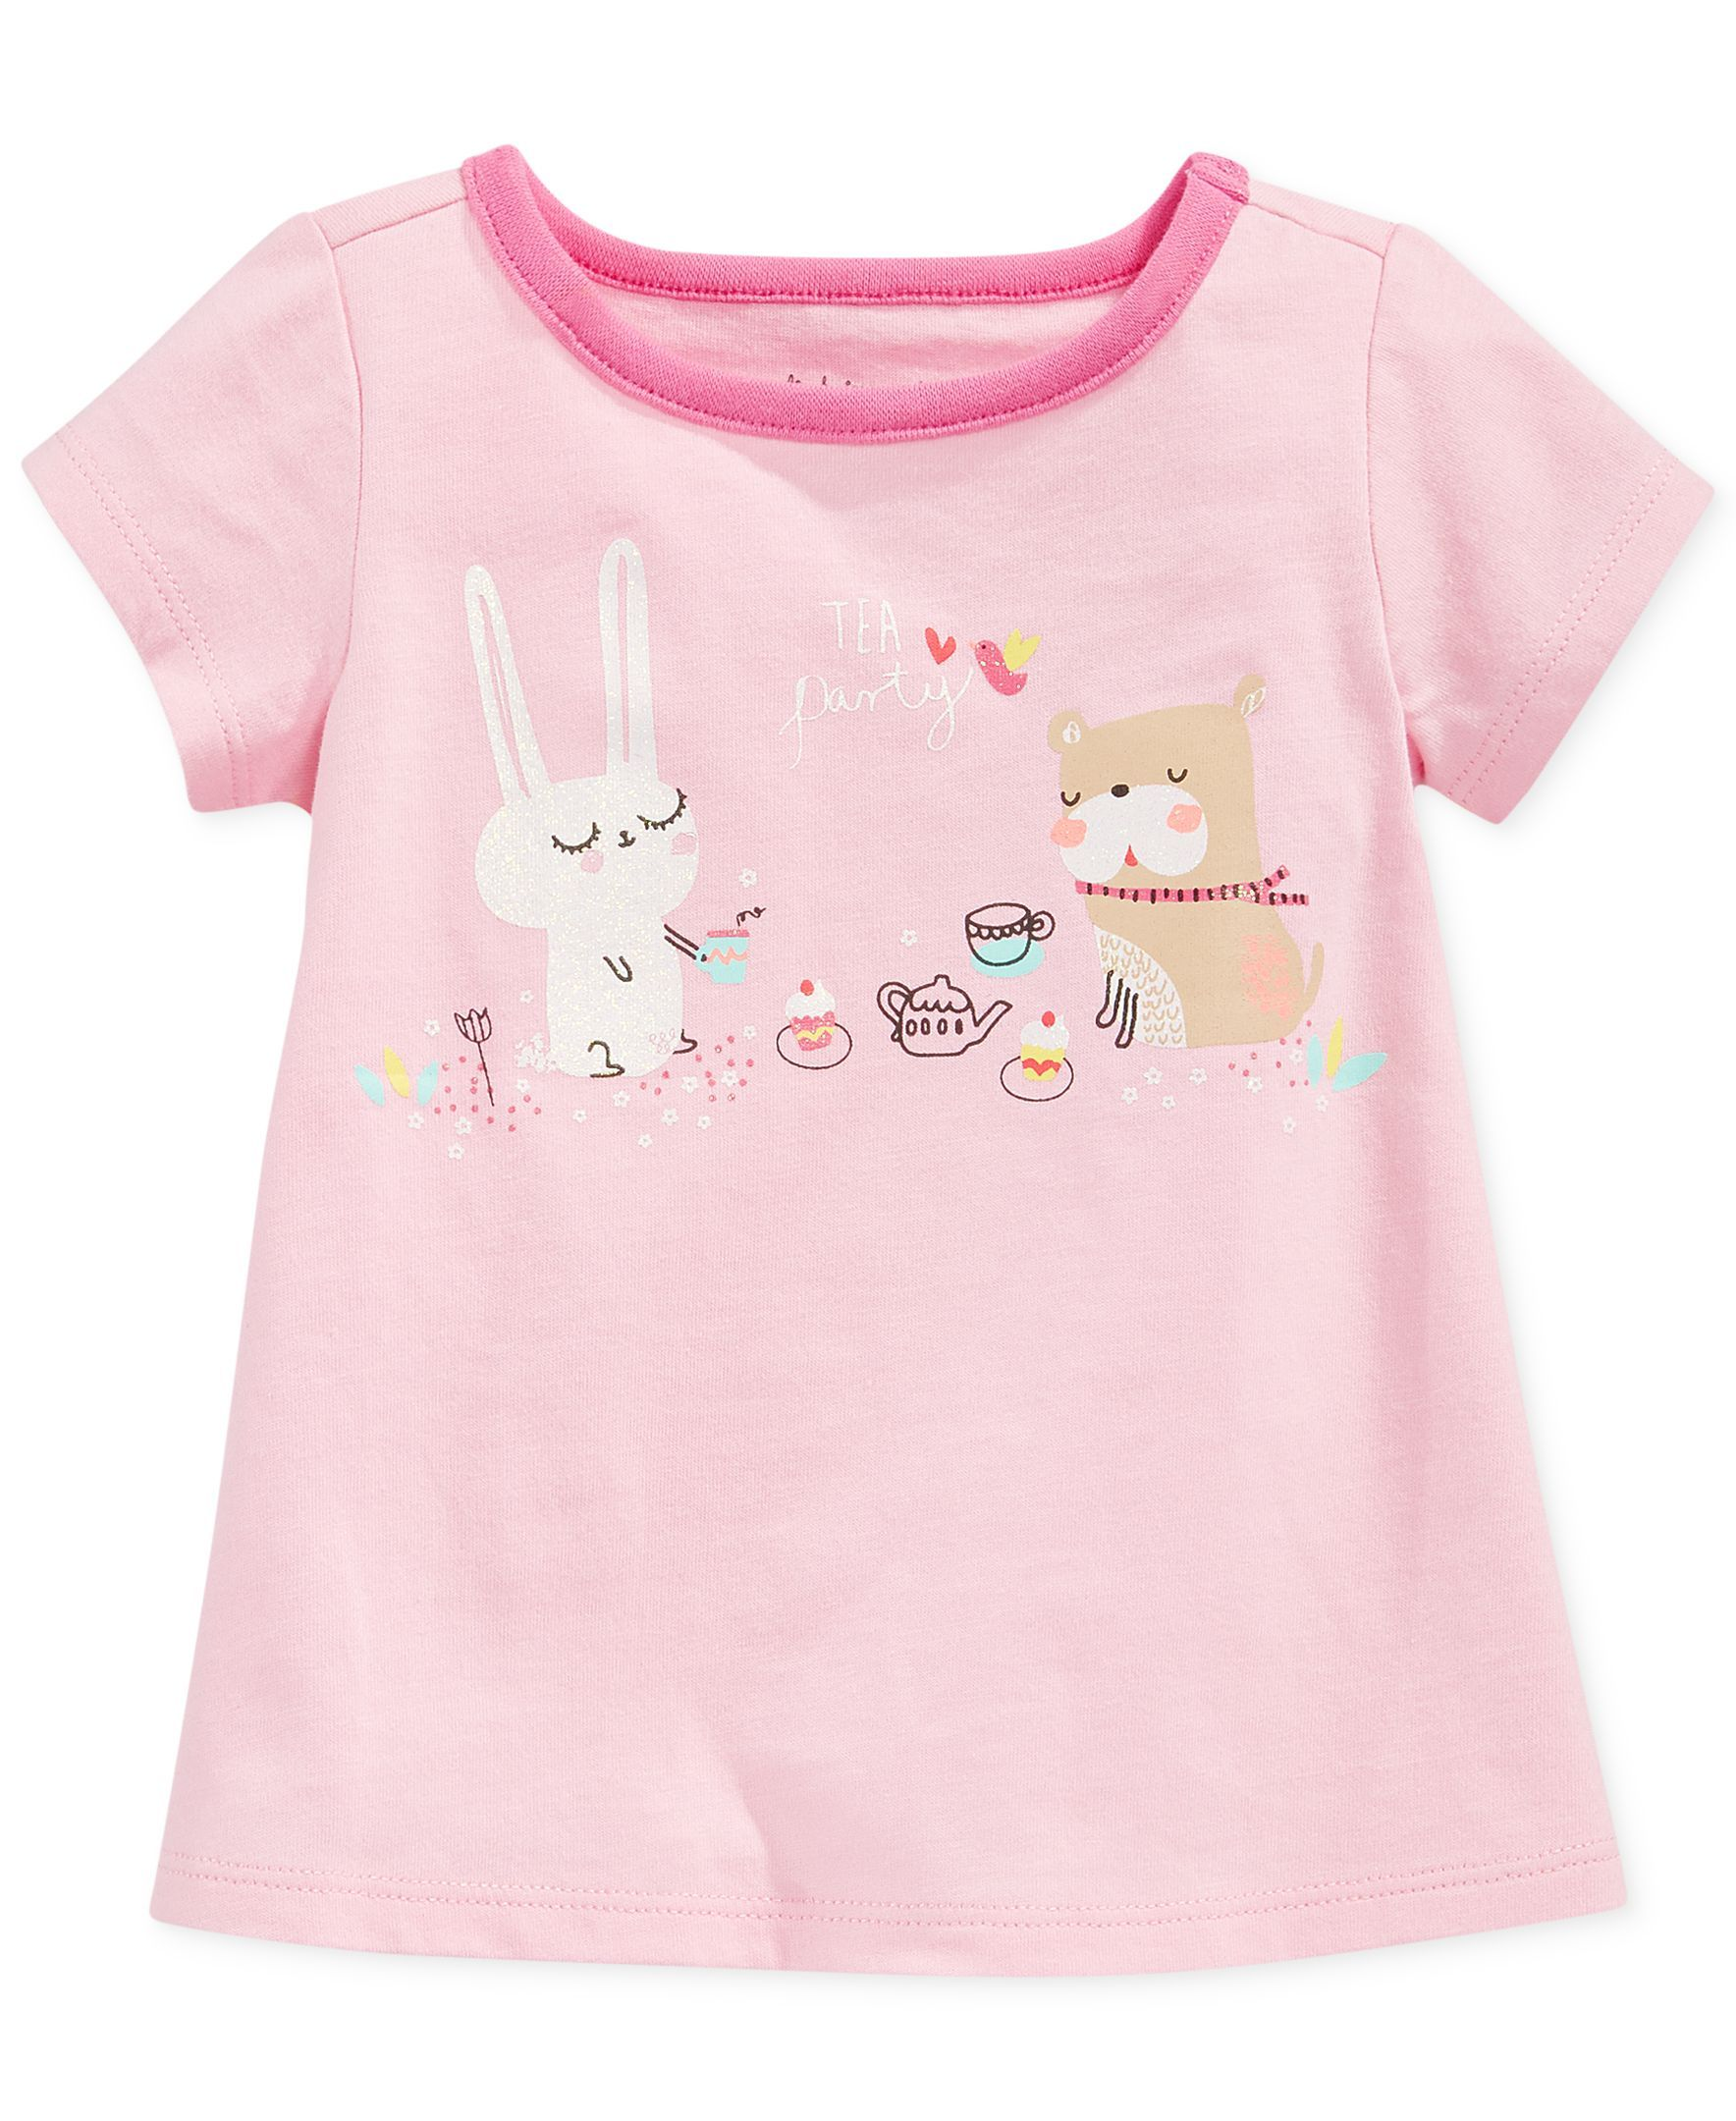 First Impressions Baby Girls Tea Party Tee Toddler Girl